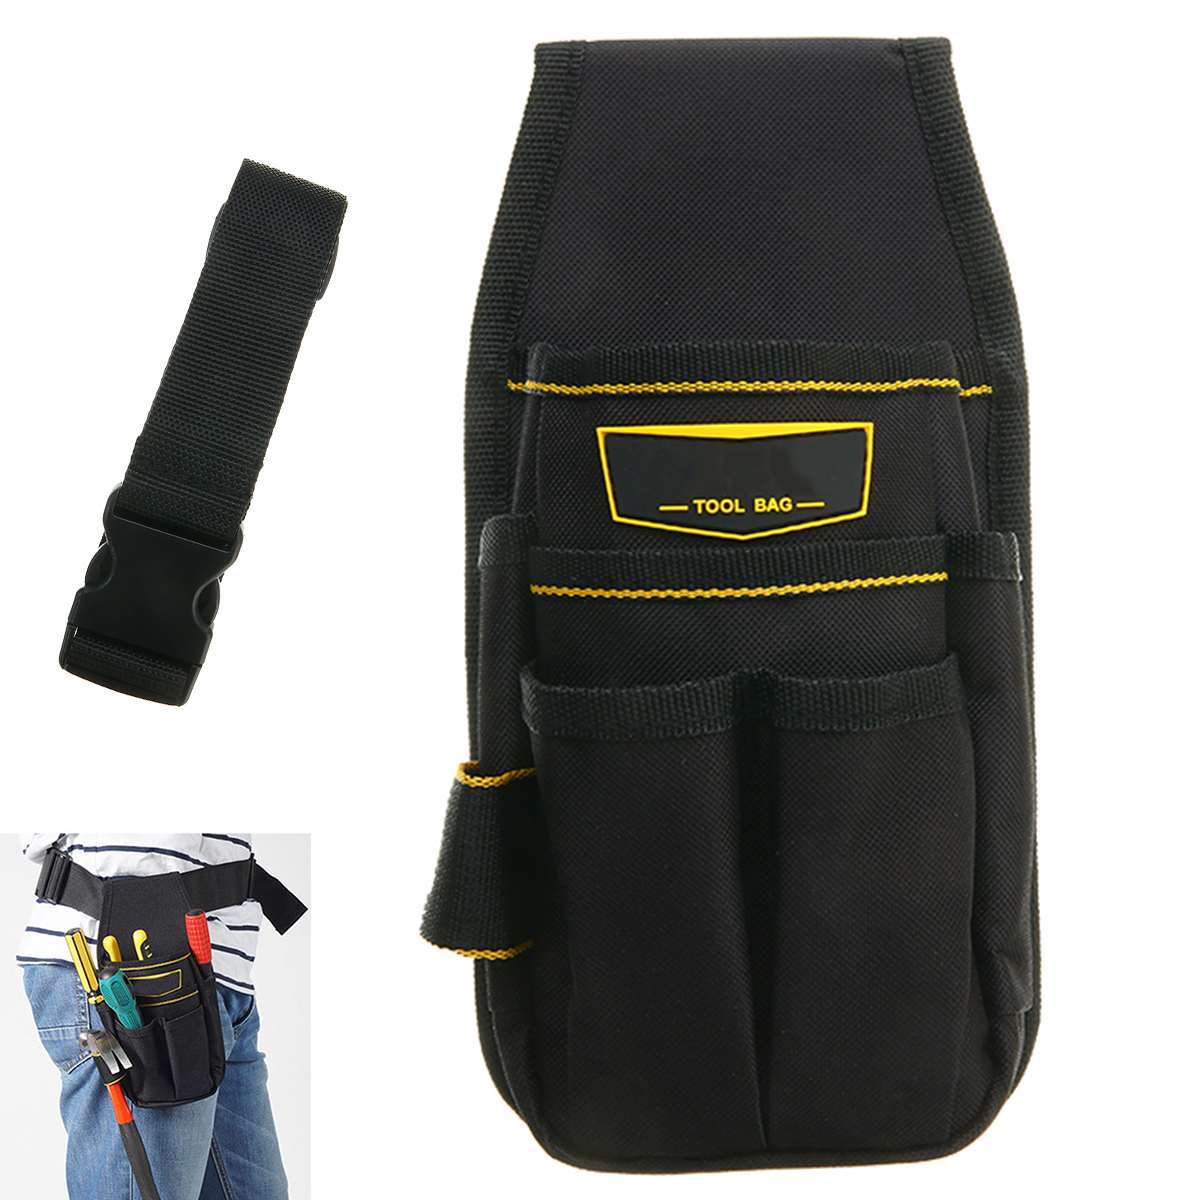 New Electrician Tool Bag Waist Pocket Pouch Belt Tool Storage Holder Maintenance Tools Screwdriver Pliers Storage Bag